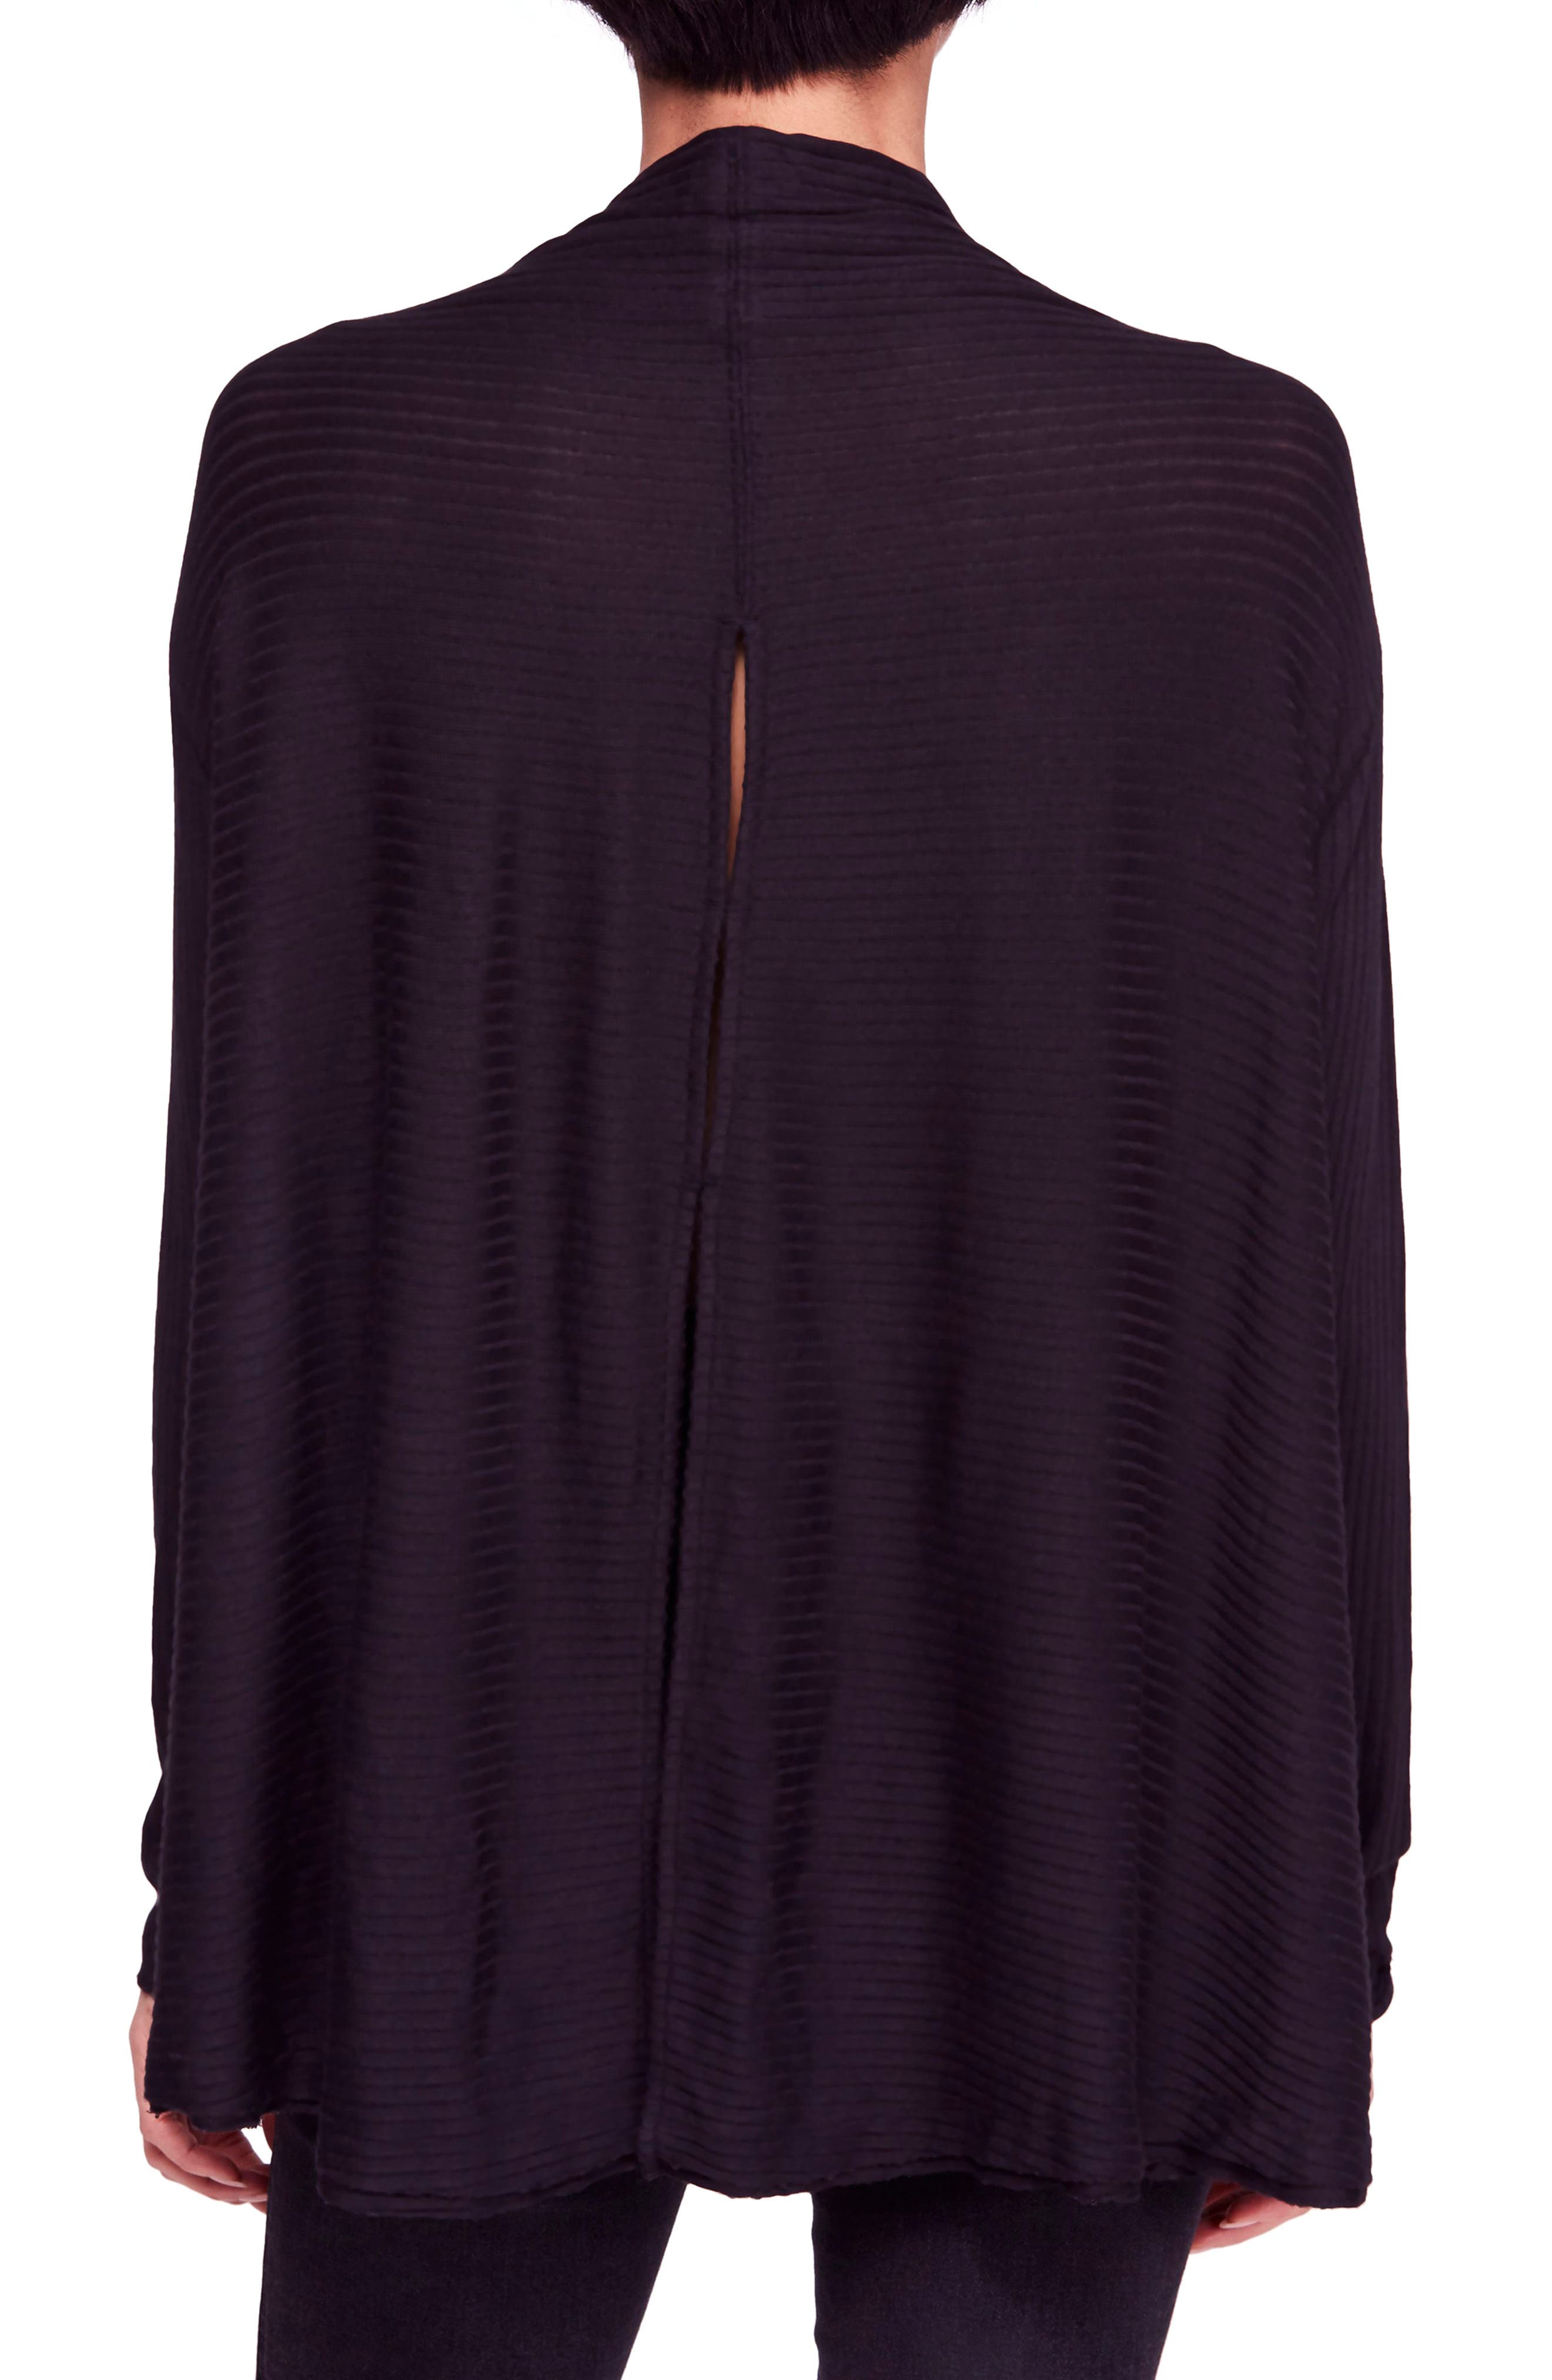 FREE PEOPLE, Lover Rib Split Back Pullover, Alternate thumbnail 2, color, 001